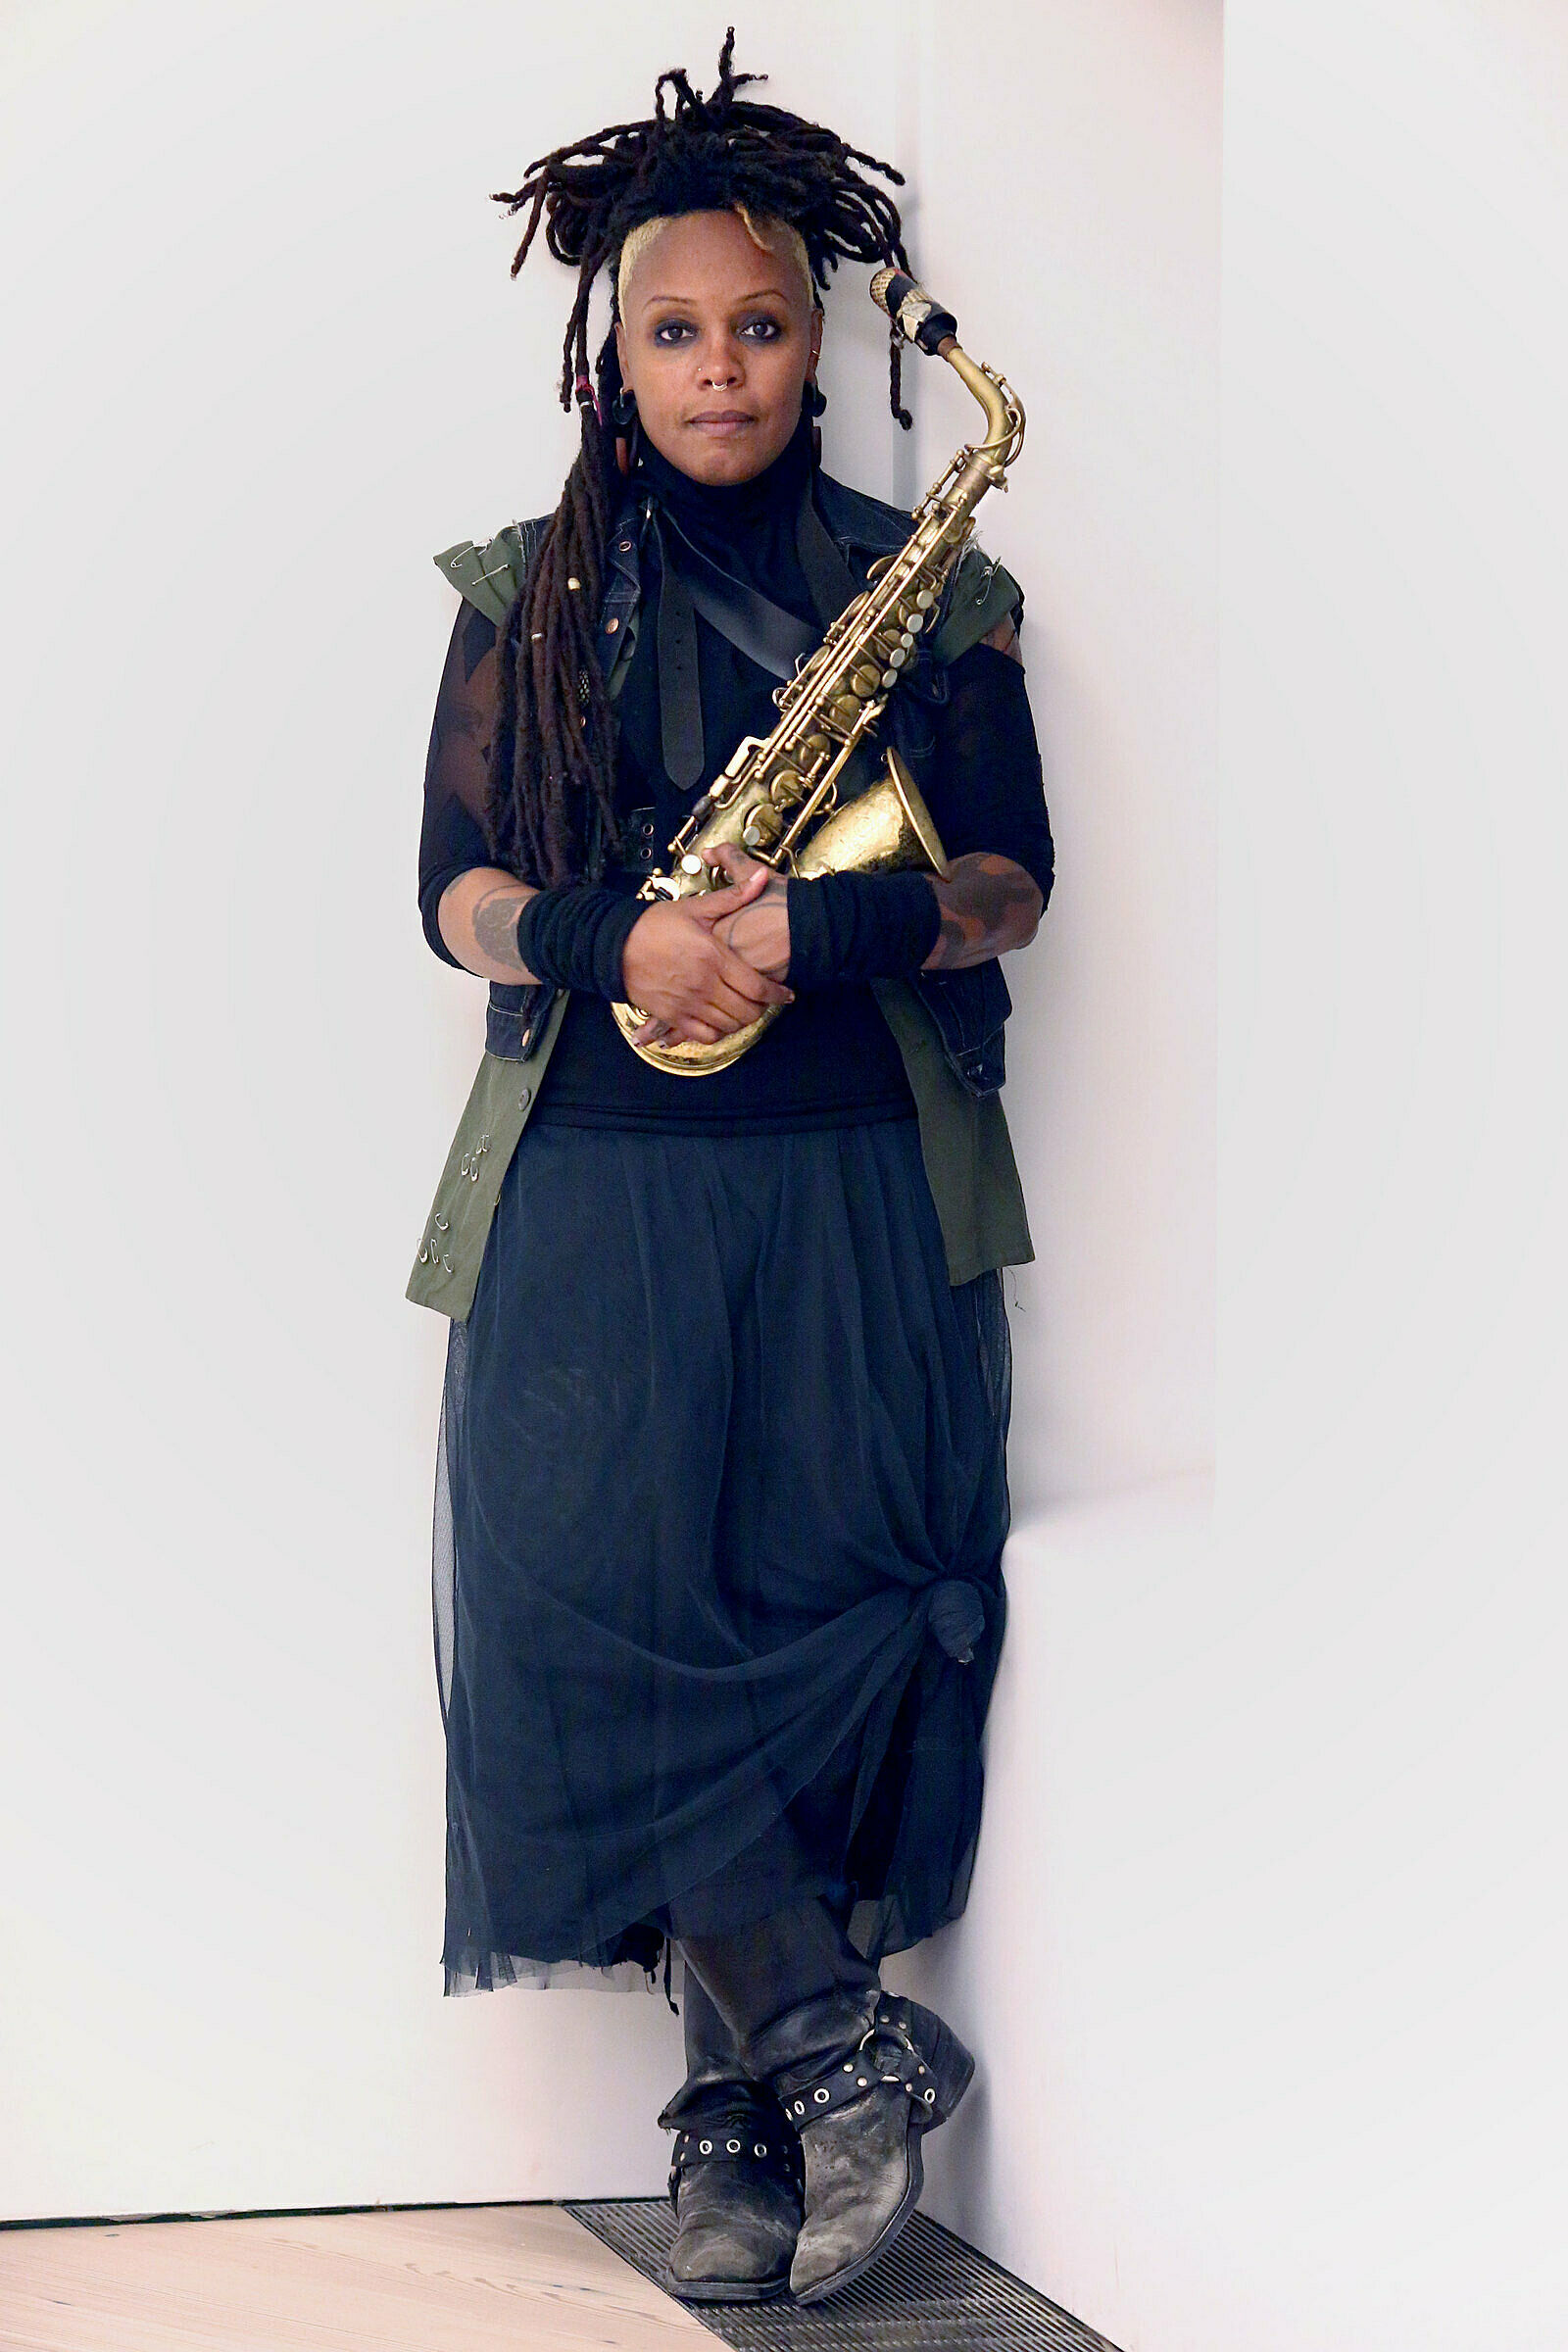 Matana Roberts leans against a wall with a saxophone.